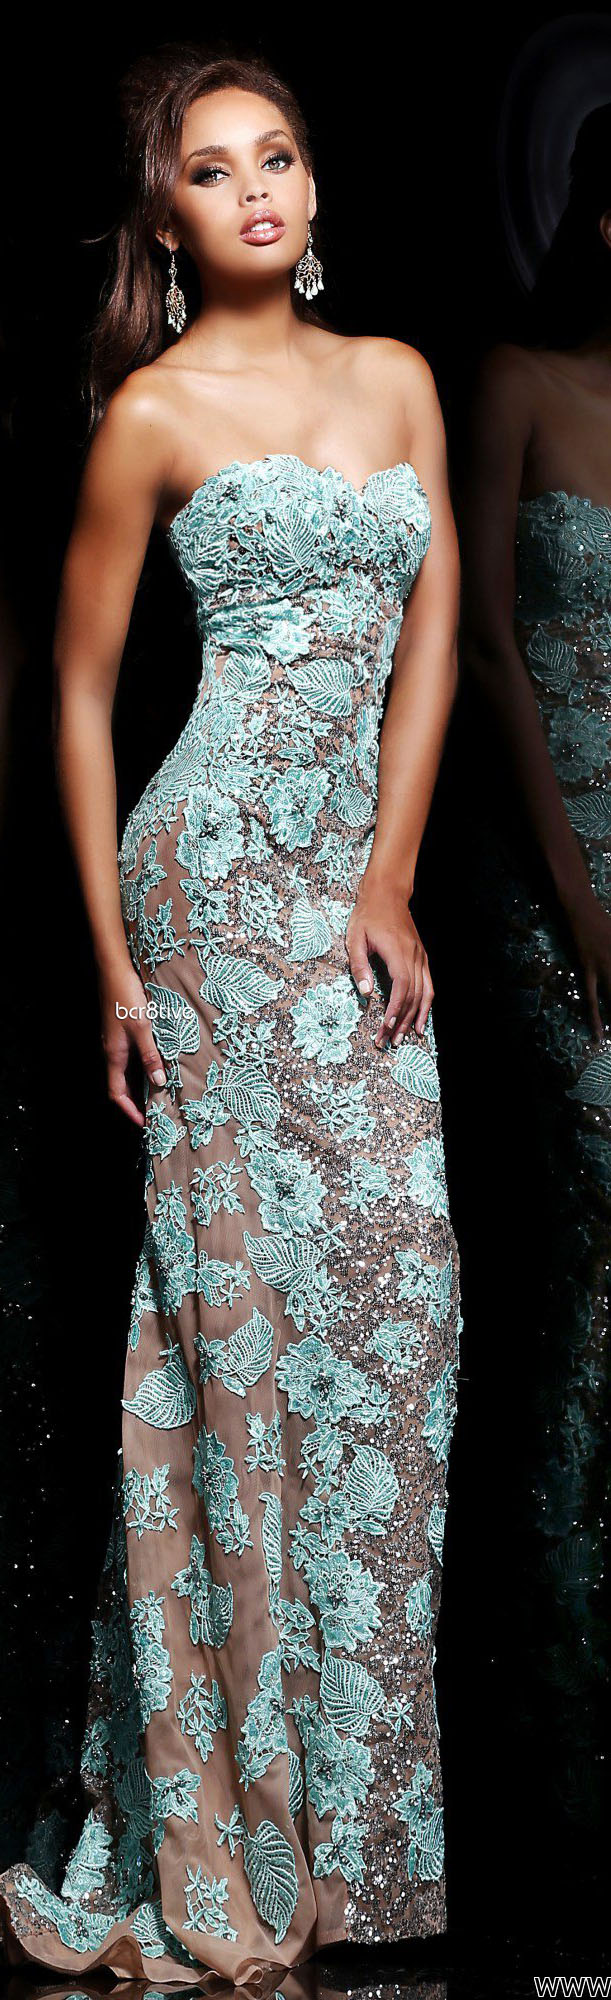 Pin by Gianni Luigi on Fashion-model | Pinterest | Prom, Gowns and ...